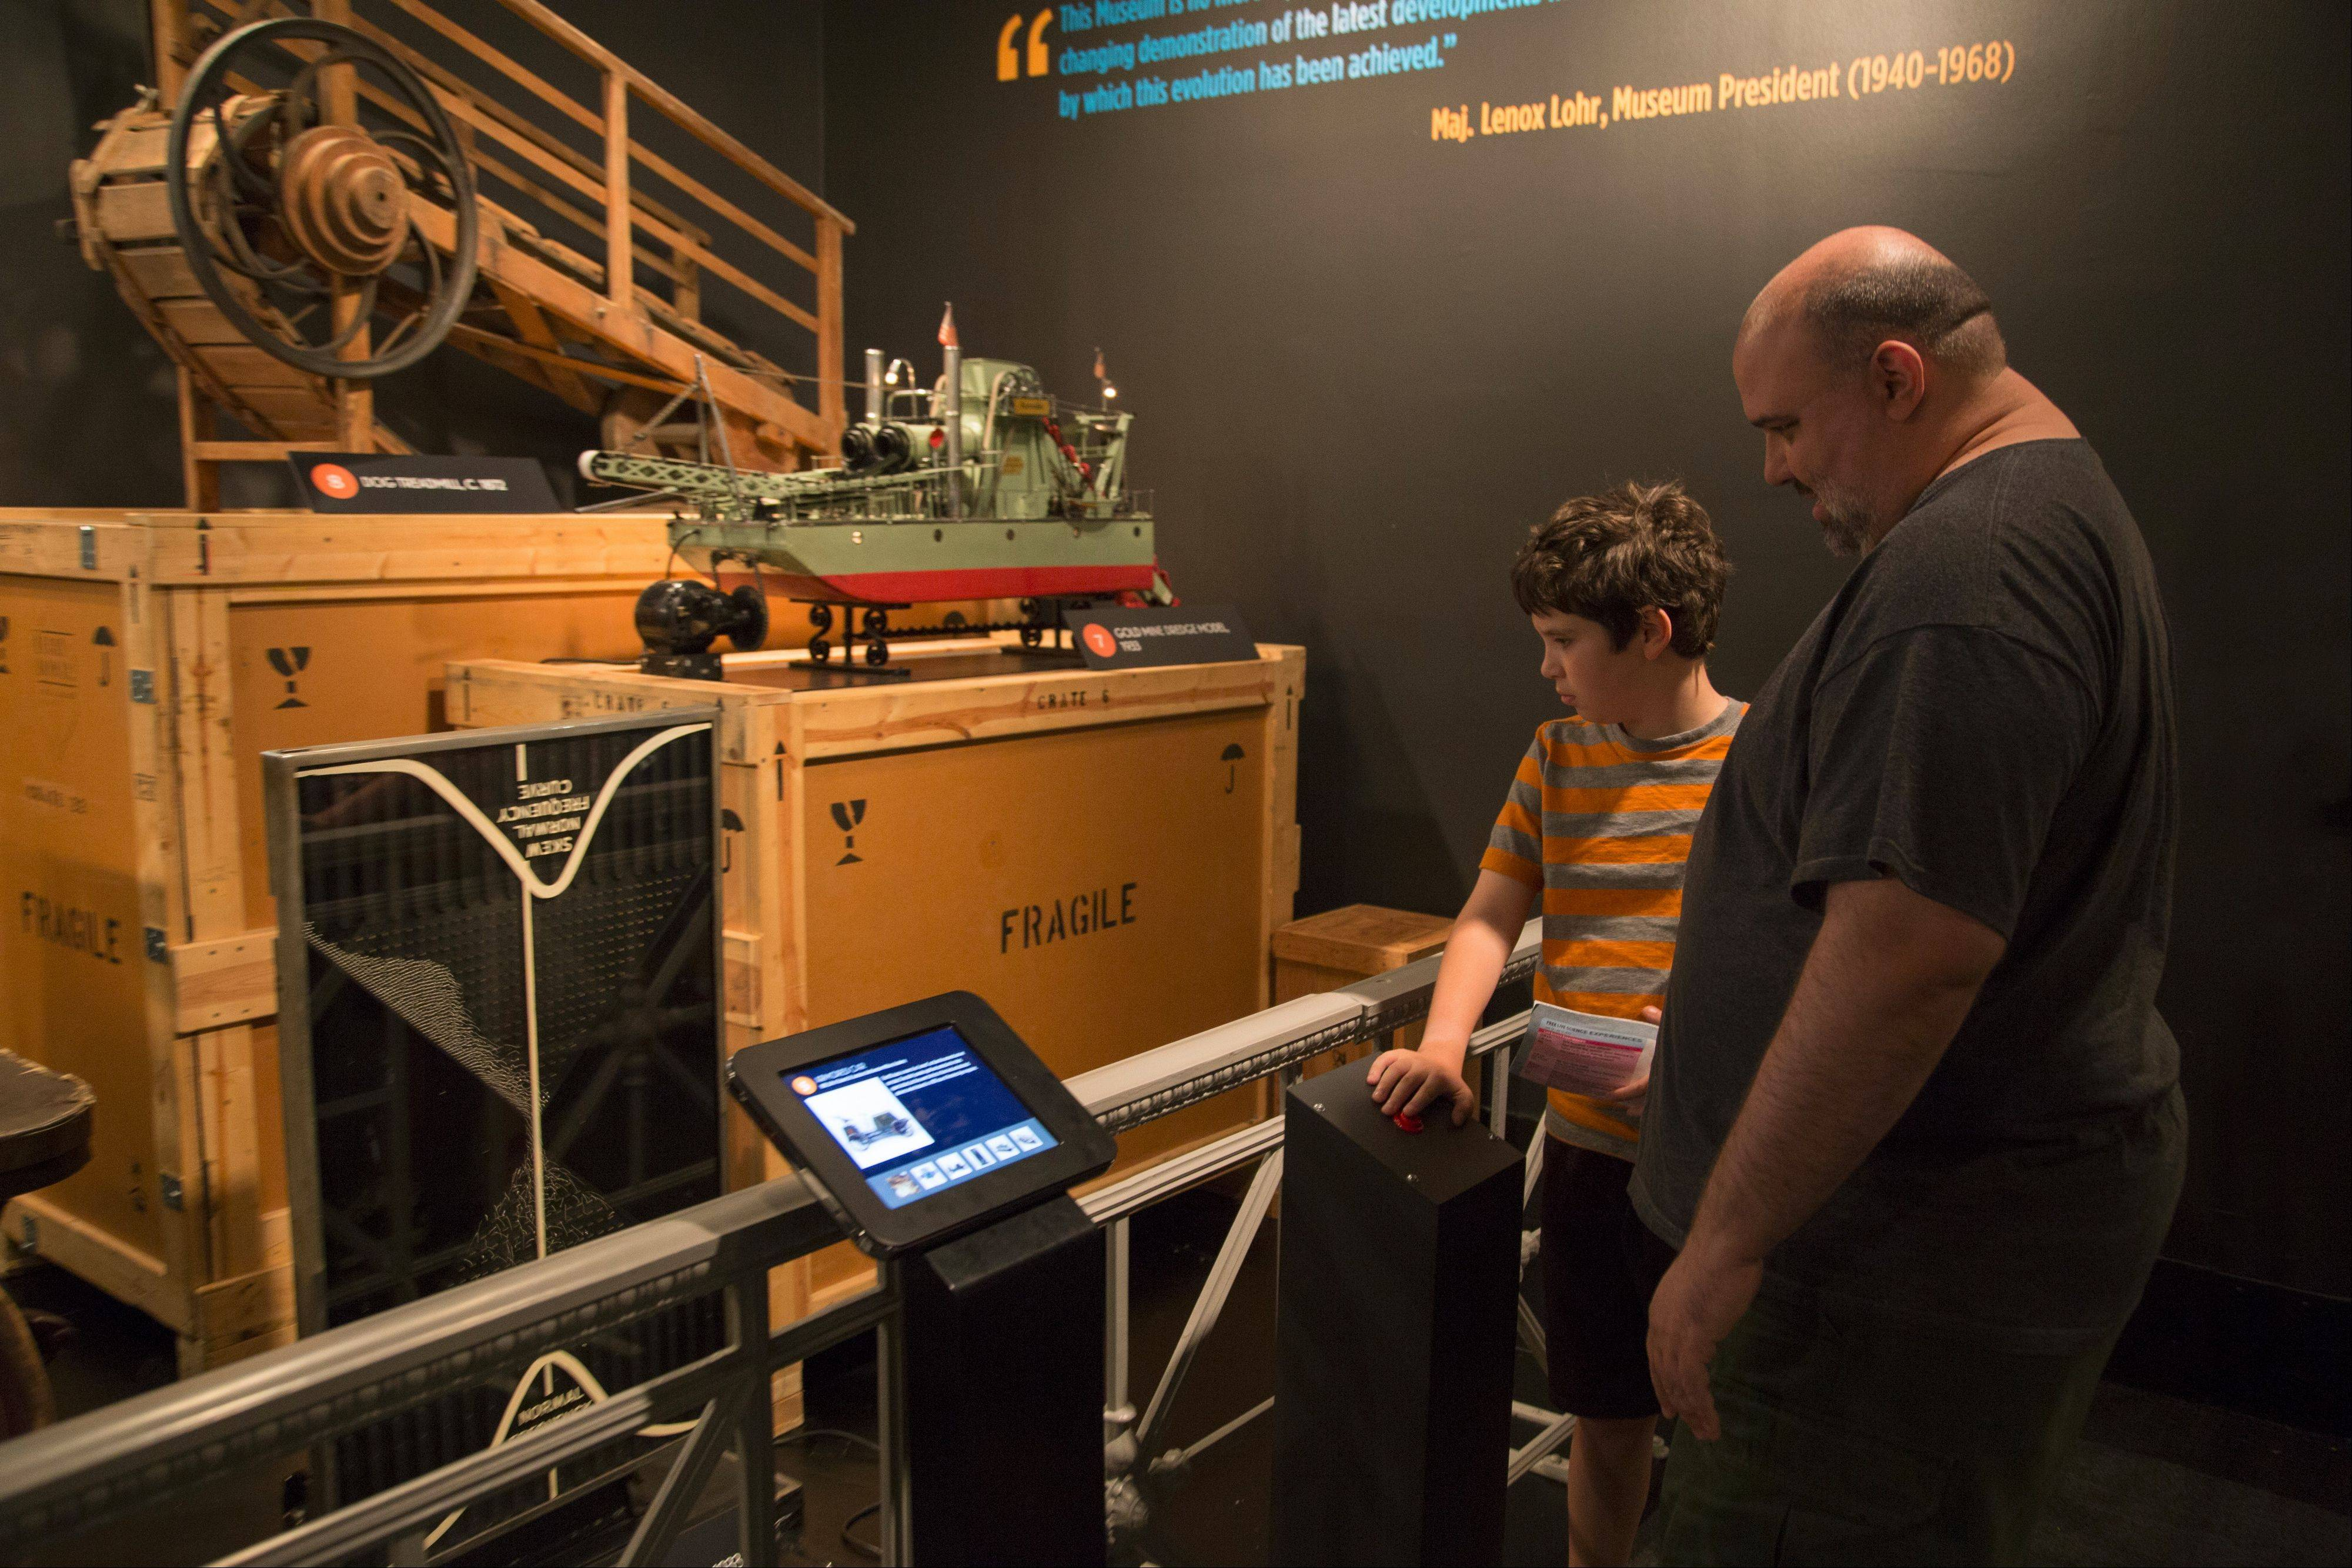 Two guests study the Galton Quincunx, a probability machine developed by Sir Francis Galton, dating back to 1933.